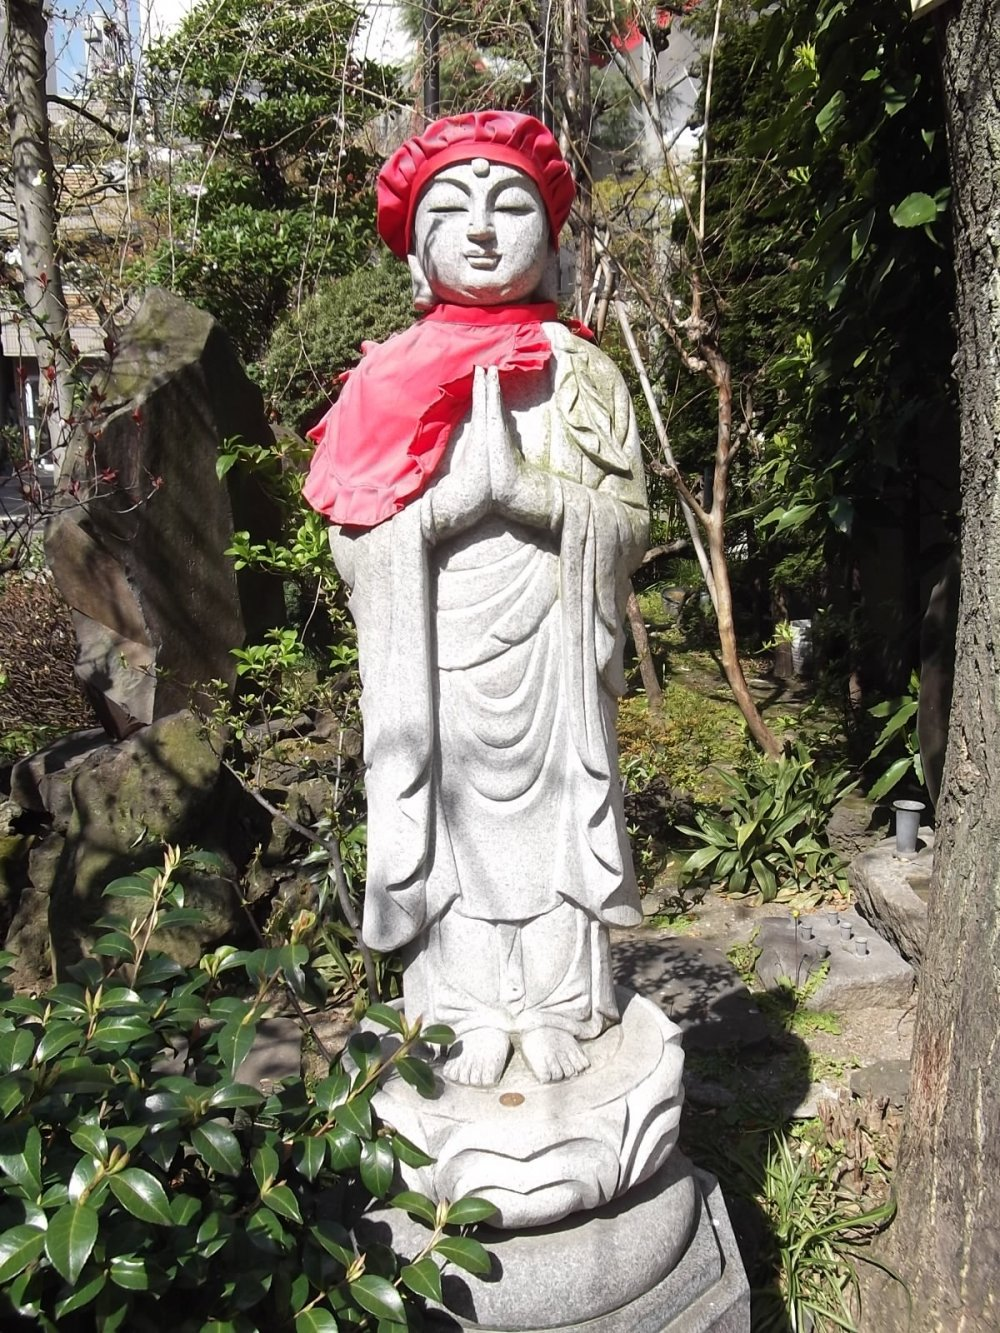 One of the serene statues